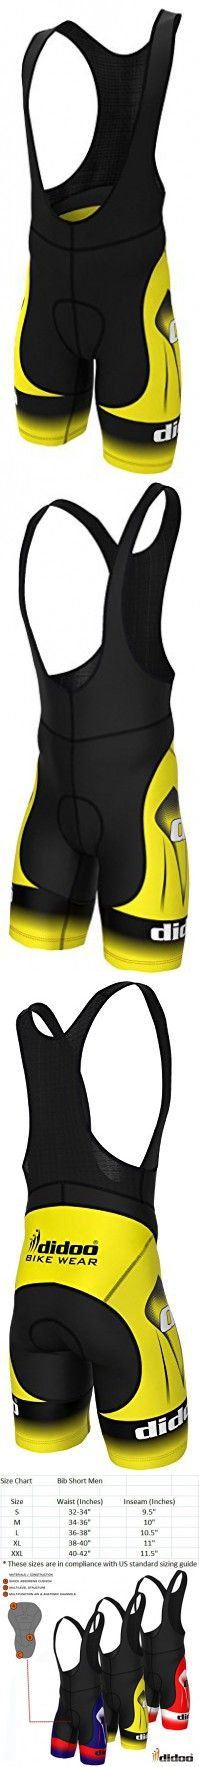 Didoo Men's Top Quality Cycling Bib Shorts Biking Racing Pants XXL Yellow